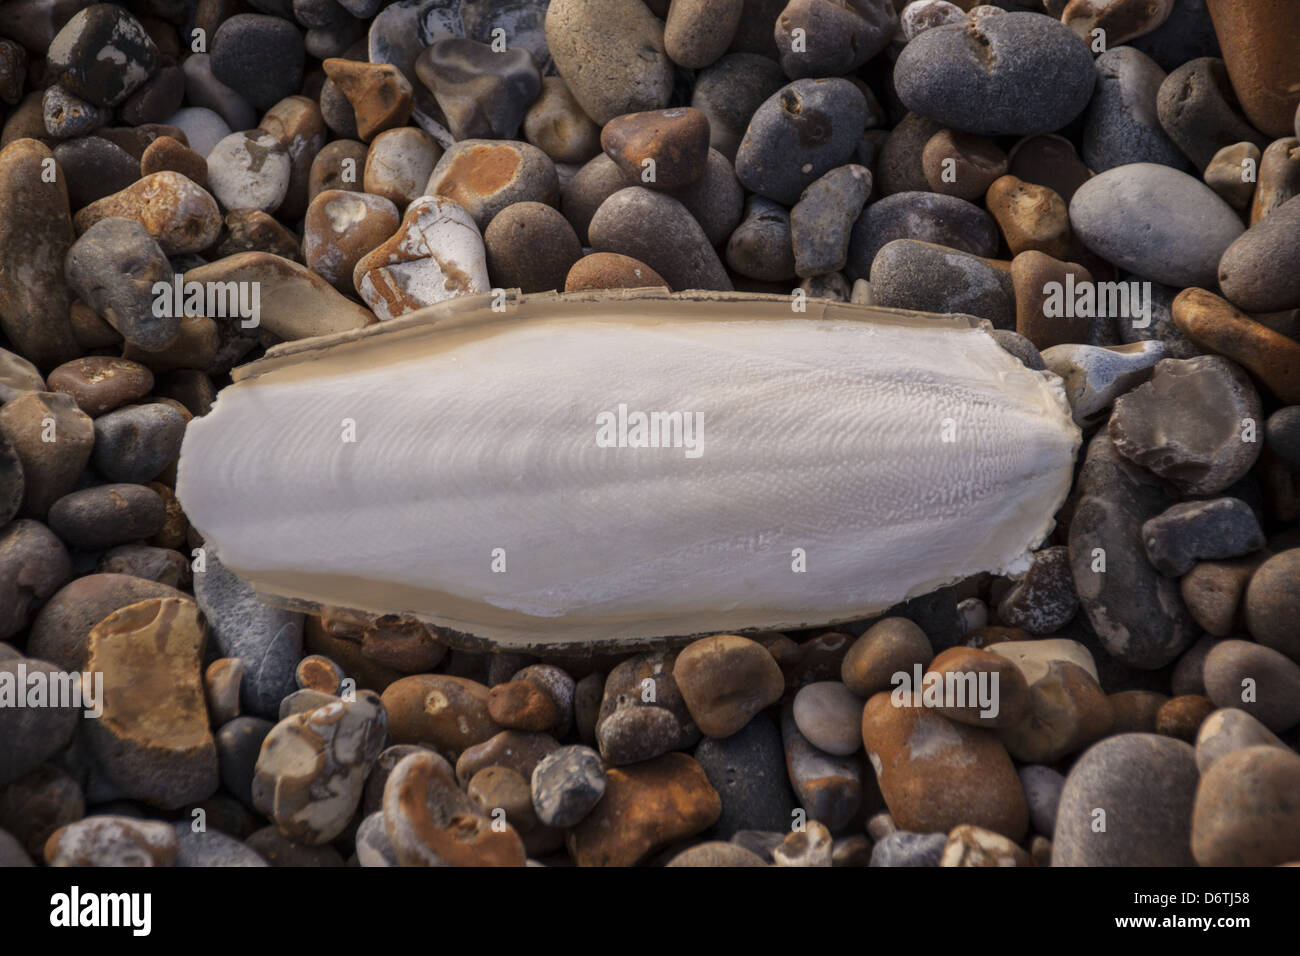 Common Cuttlefish (Sepia officinalis) cuttlebone, washed up on a pebble beach, Aldeburgh, Suffolk, England, March - Stock Image